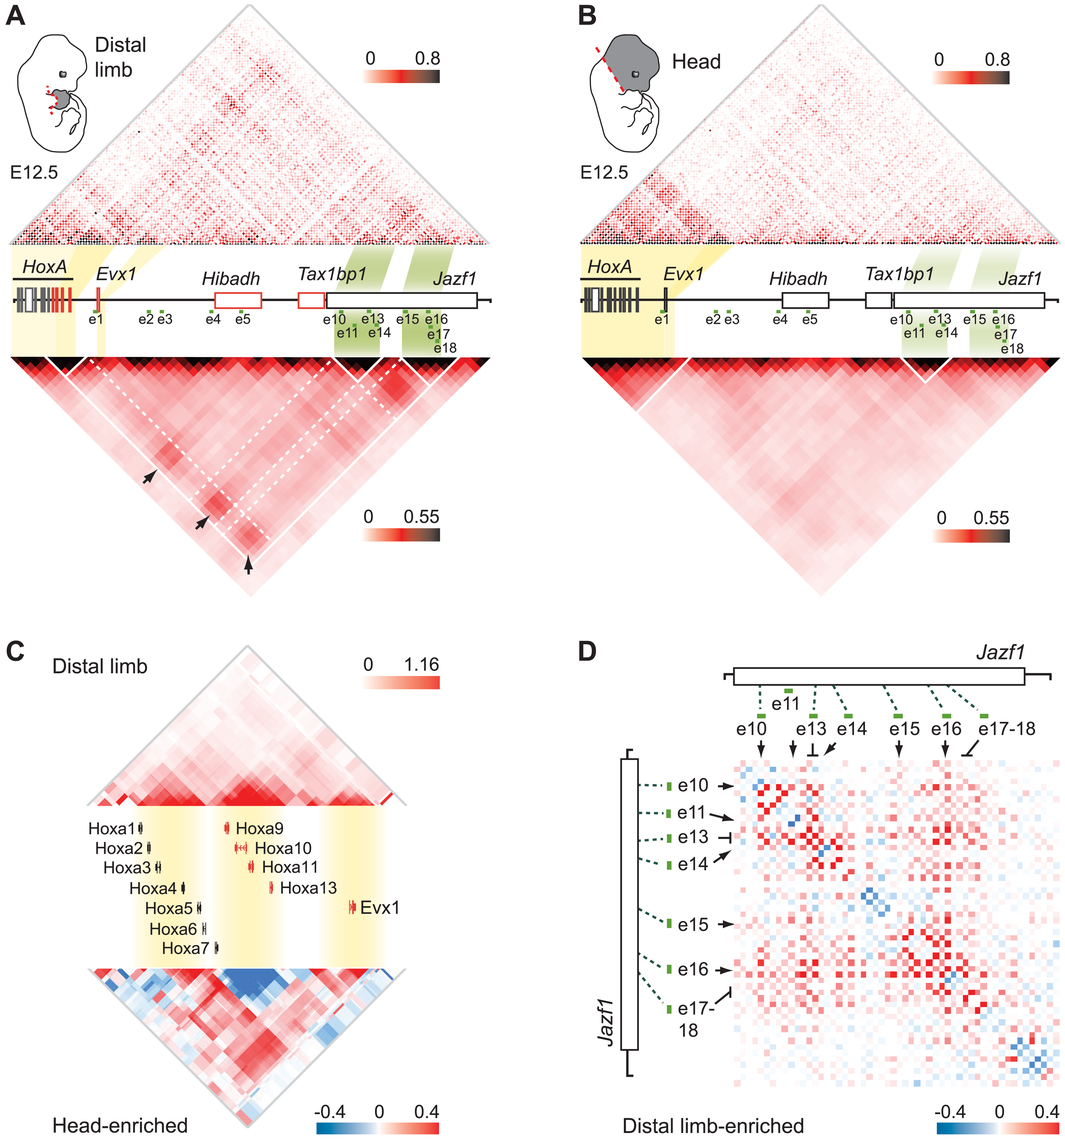 Extensive clustering of genes and enhancers highlights a complex regulation network in distal limbs.